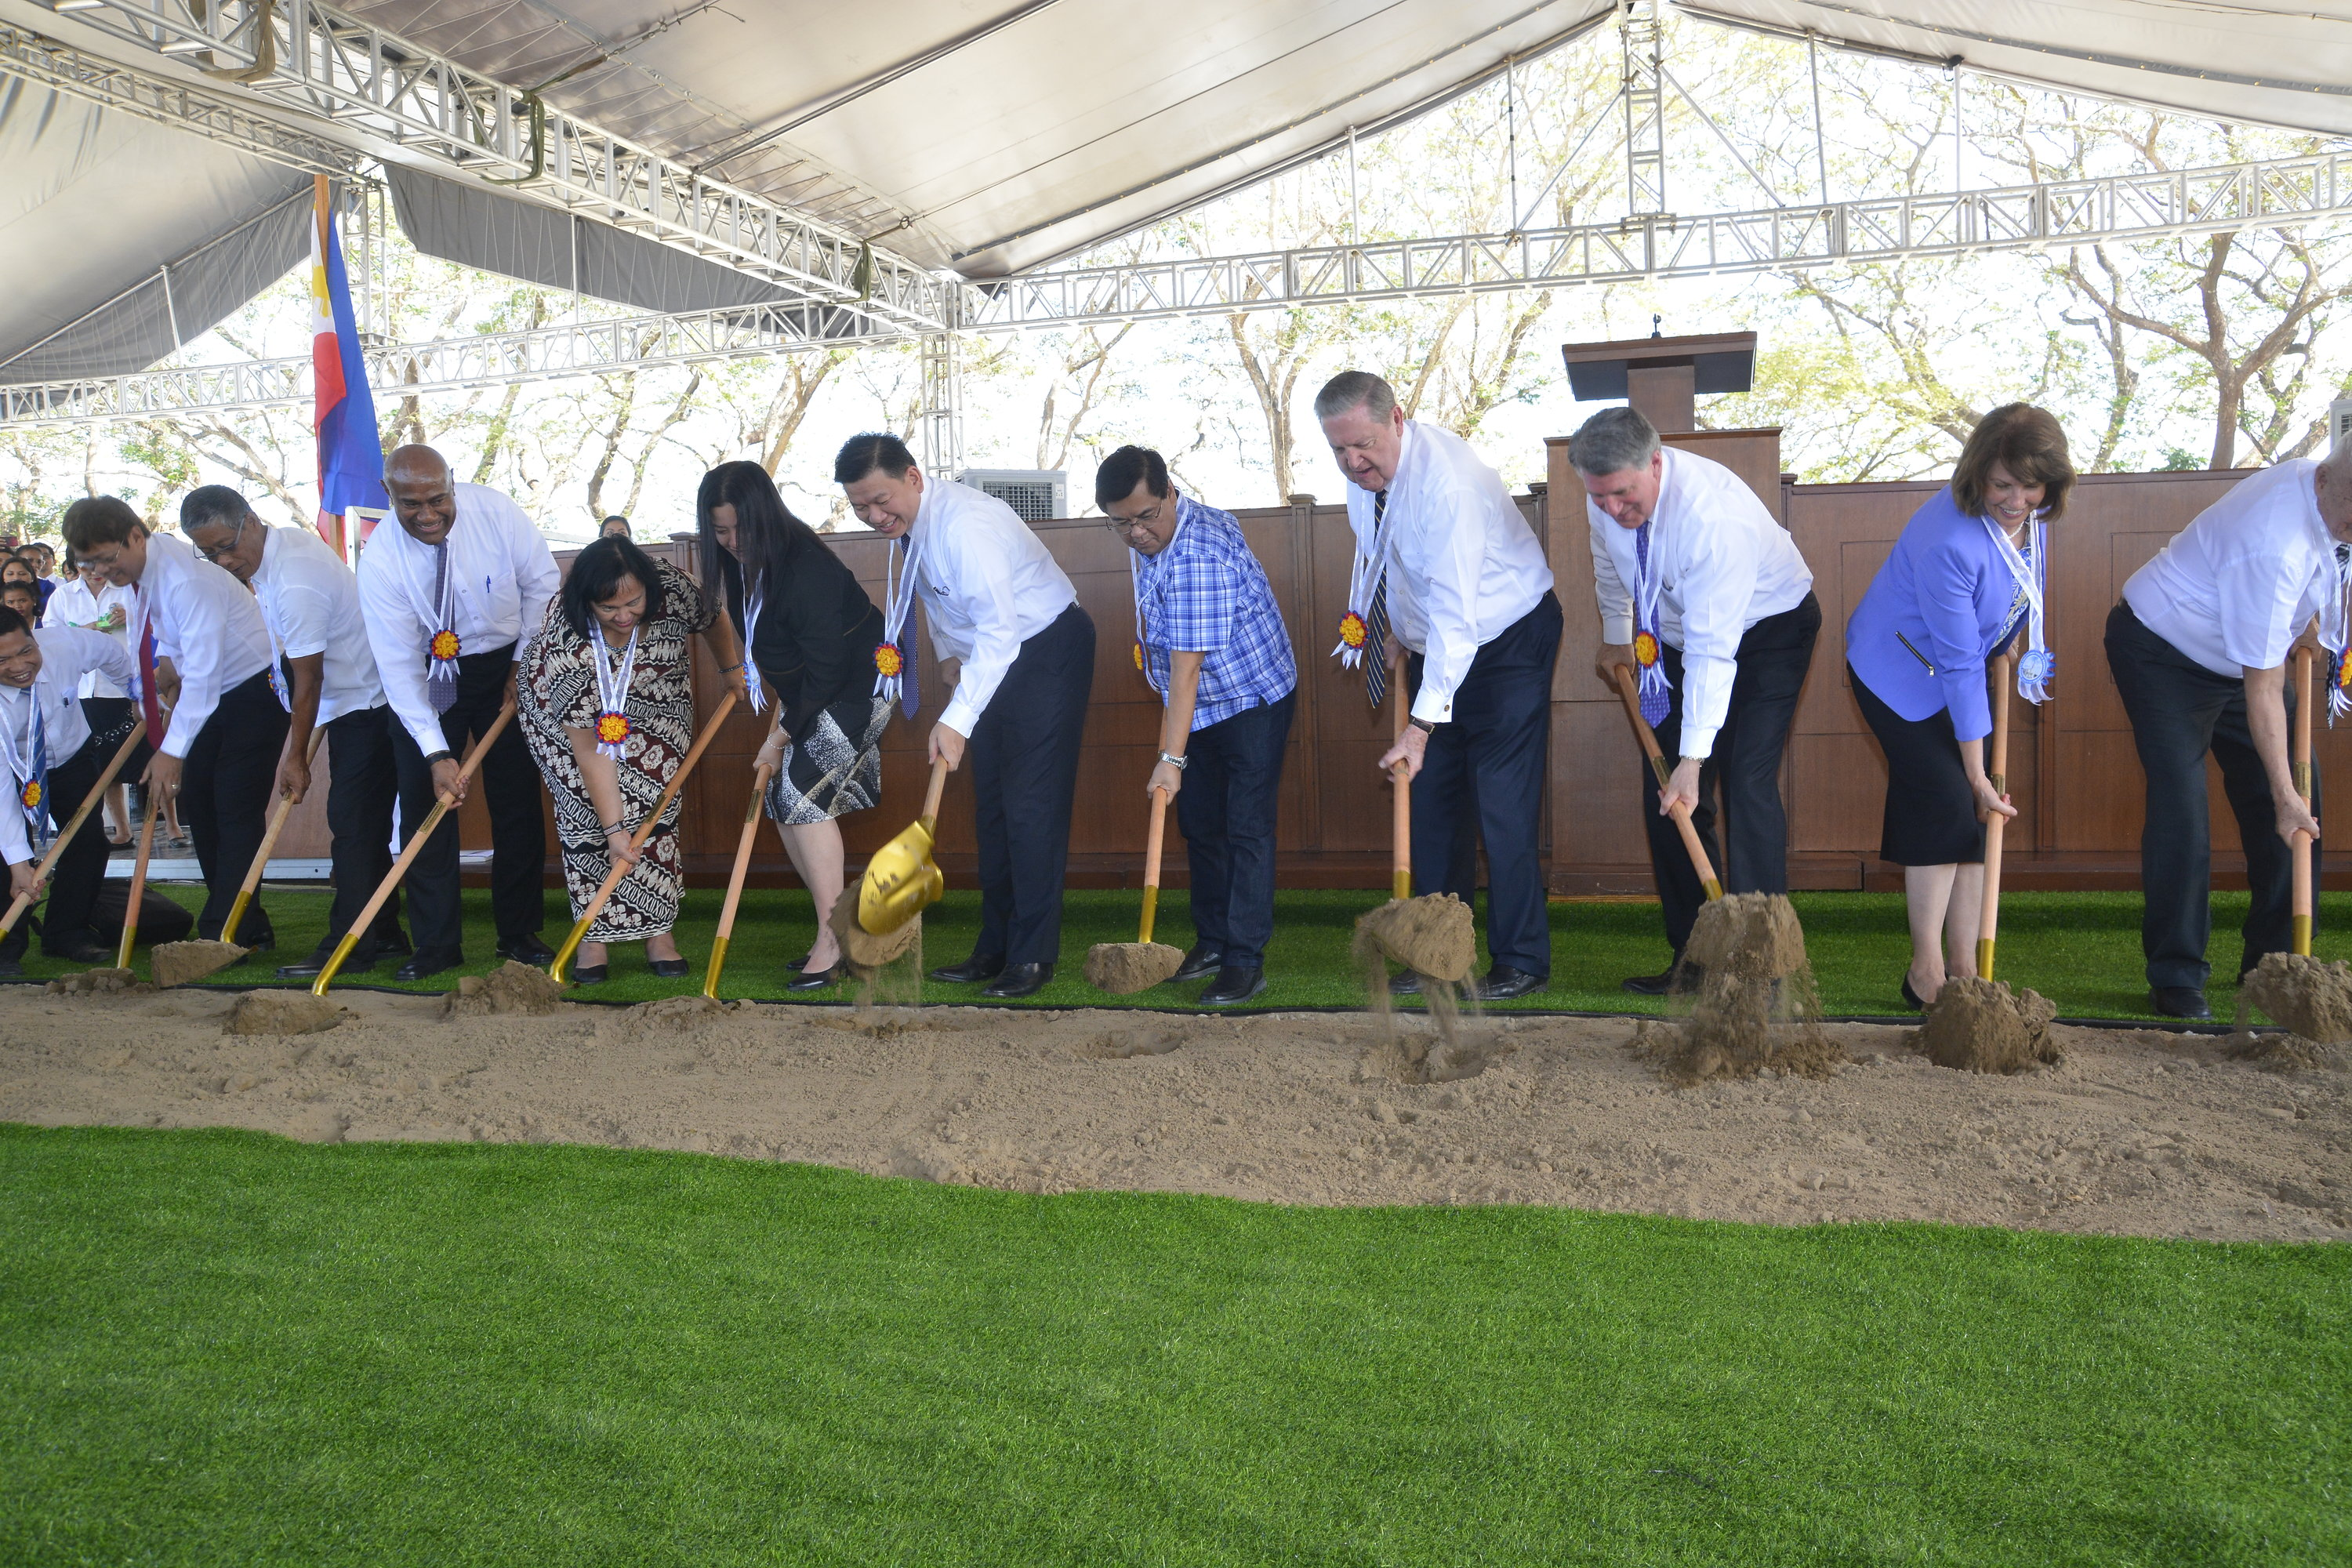 Senior Church leaders joined community leaders in Urdaneta, Pangasinan, Philippines, on Wednesday Jan. 16, 2019, to break ground for a new temple in the Philippines.